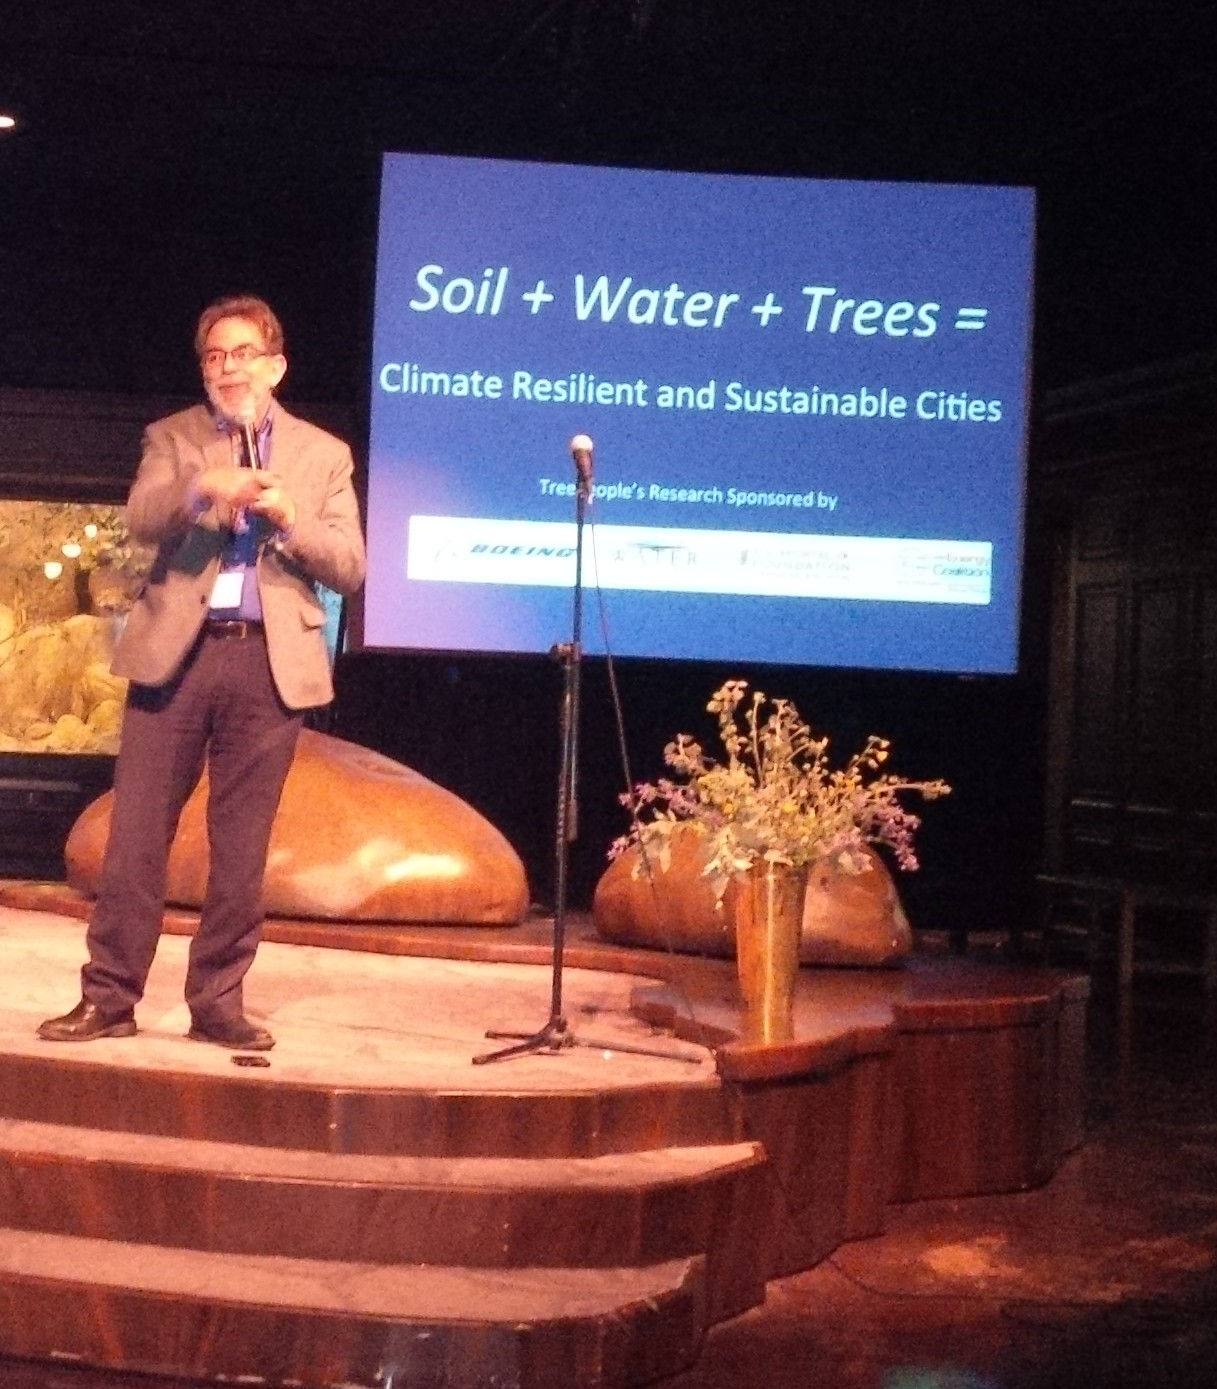 Soil + Water + Trees = Climate Resilience & Sustainable Cities